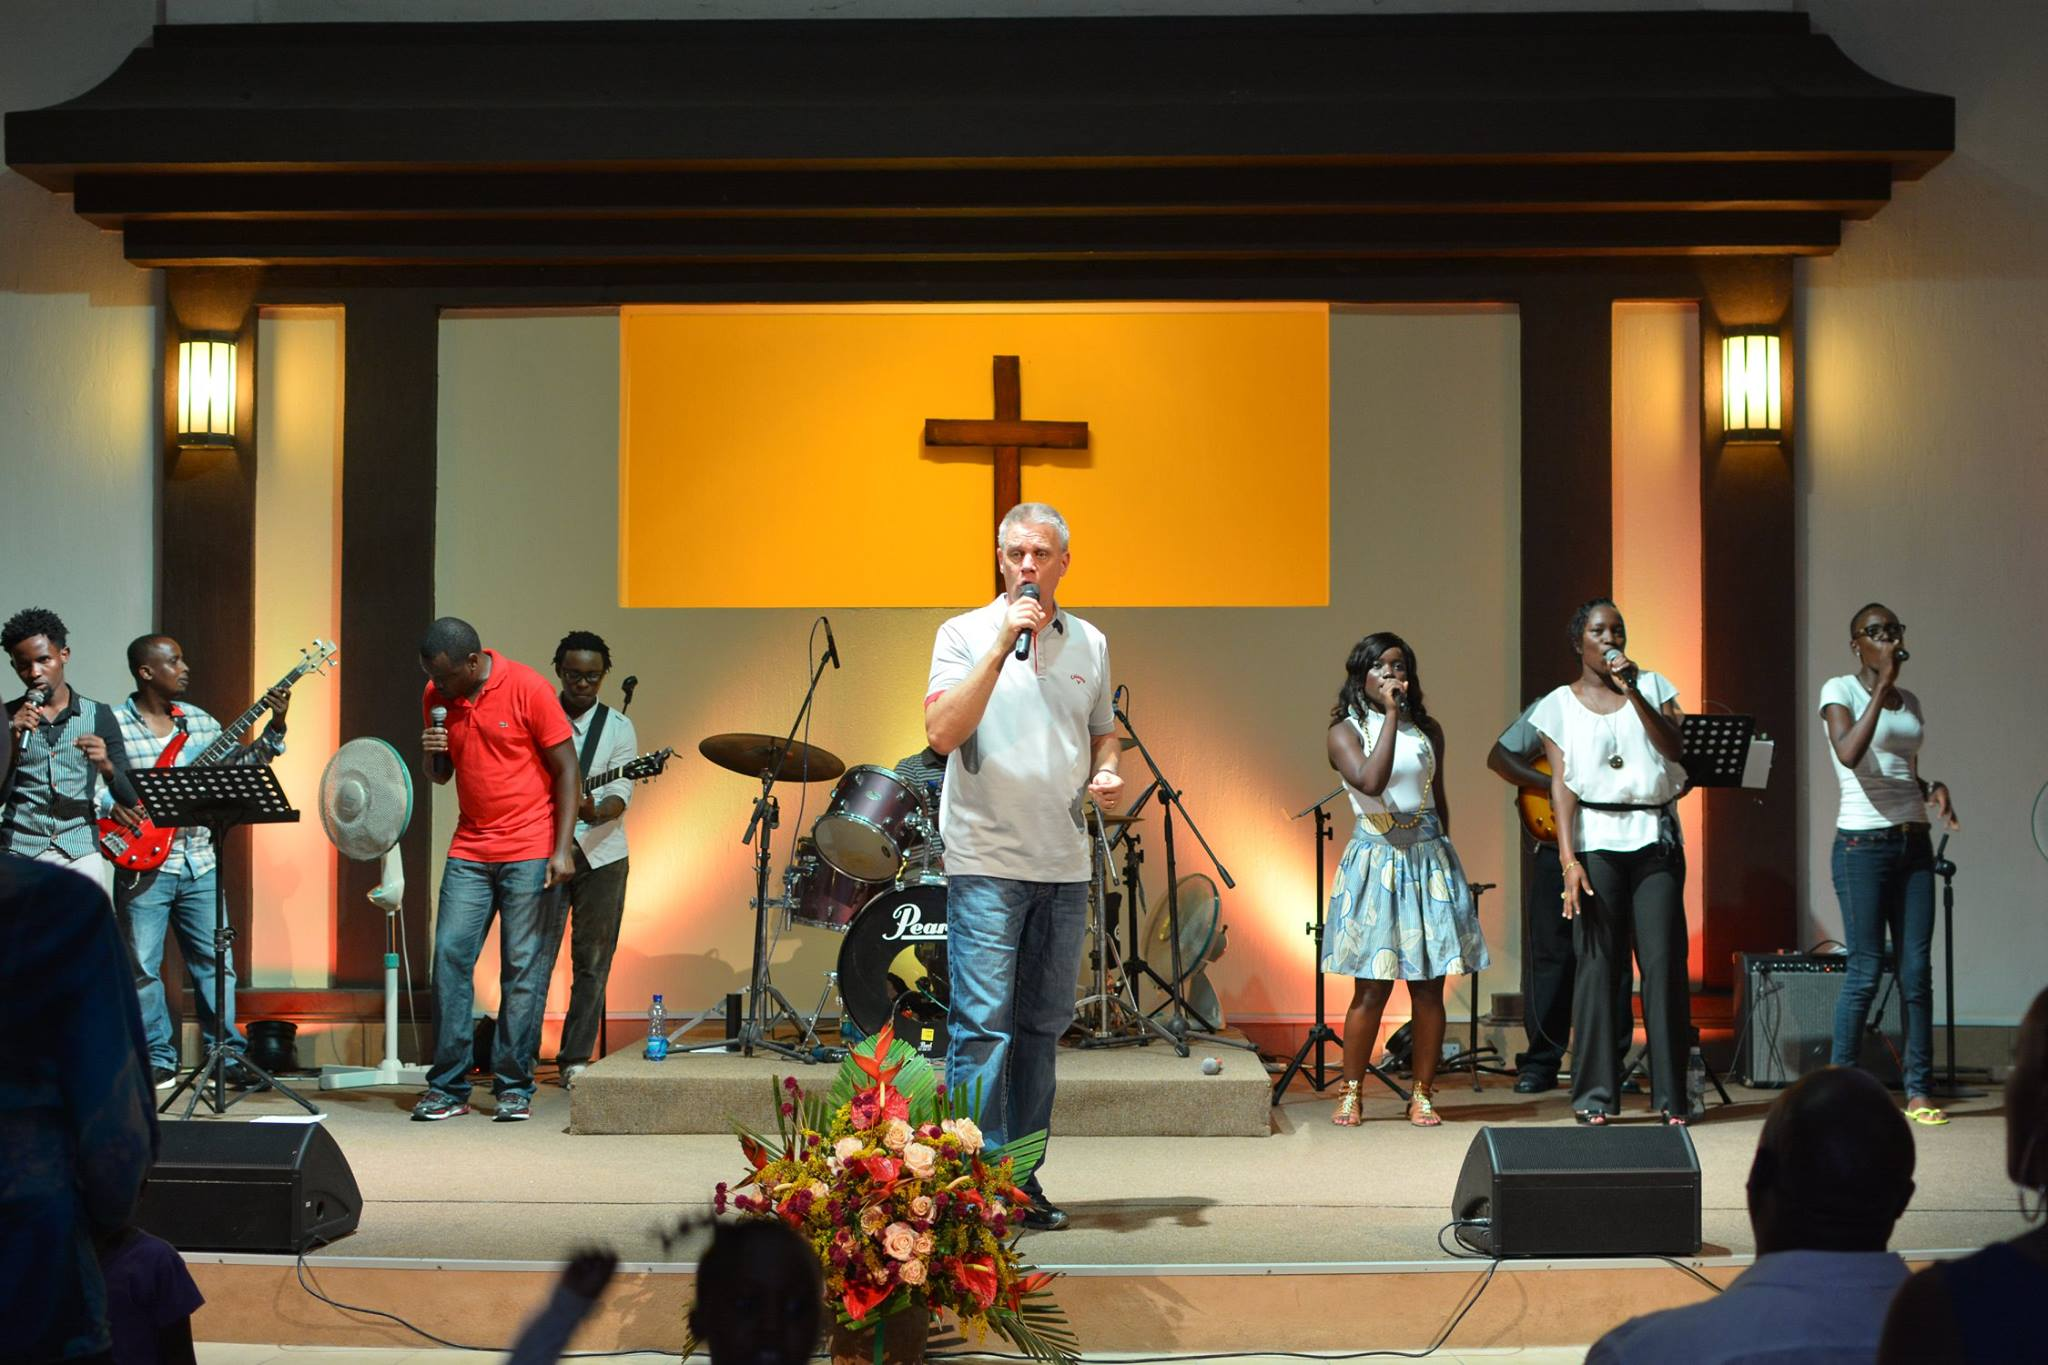 Pastor Jim Horne leading worship at Crossroads Fellowship in Nyali, Kenya.